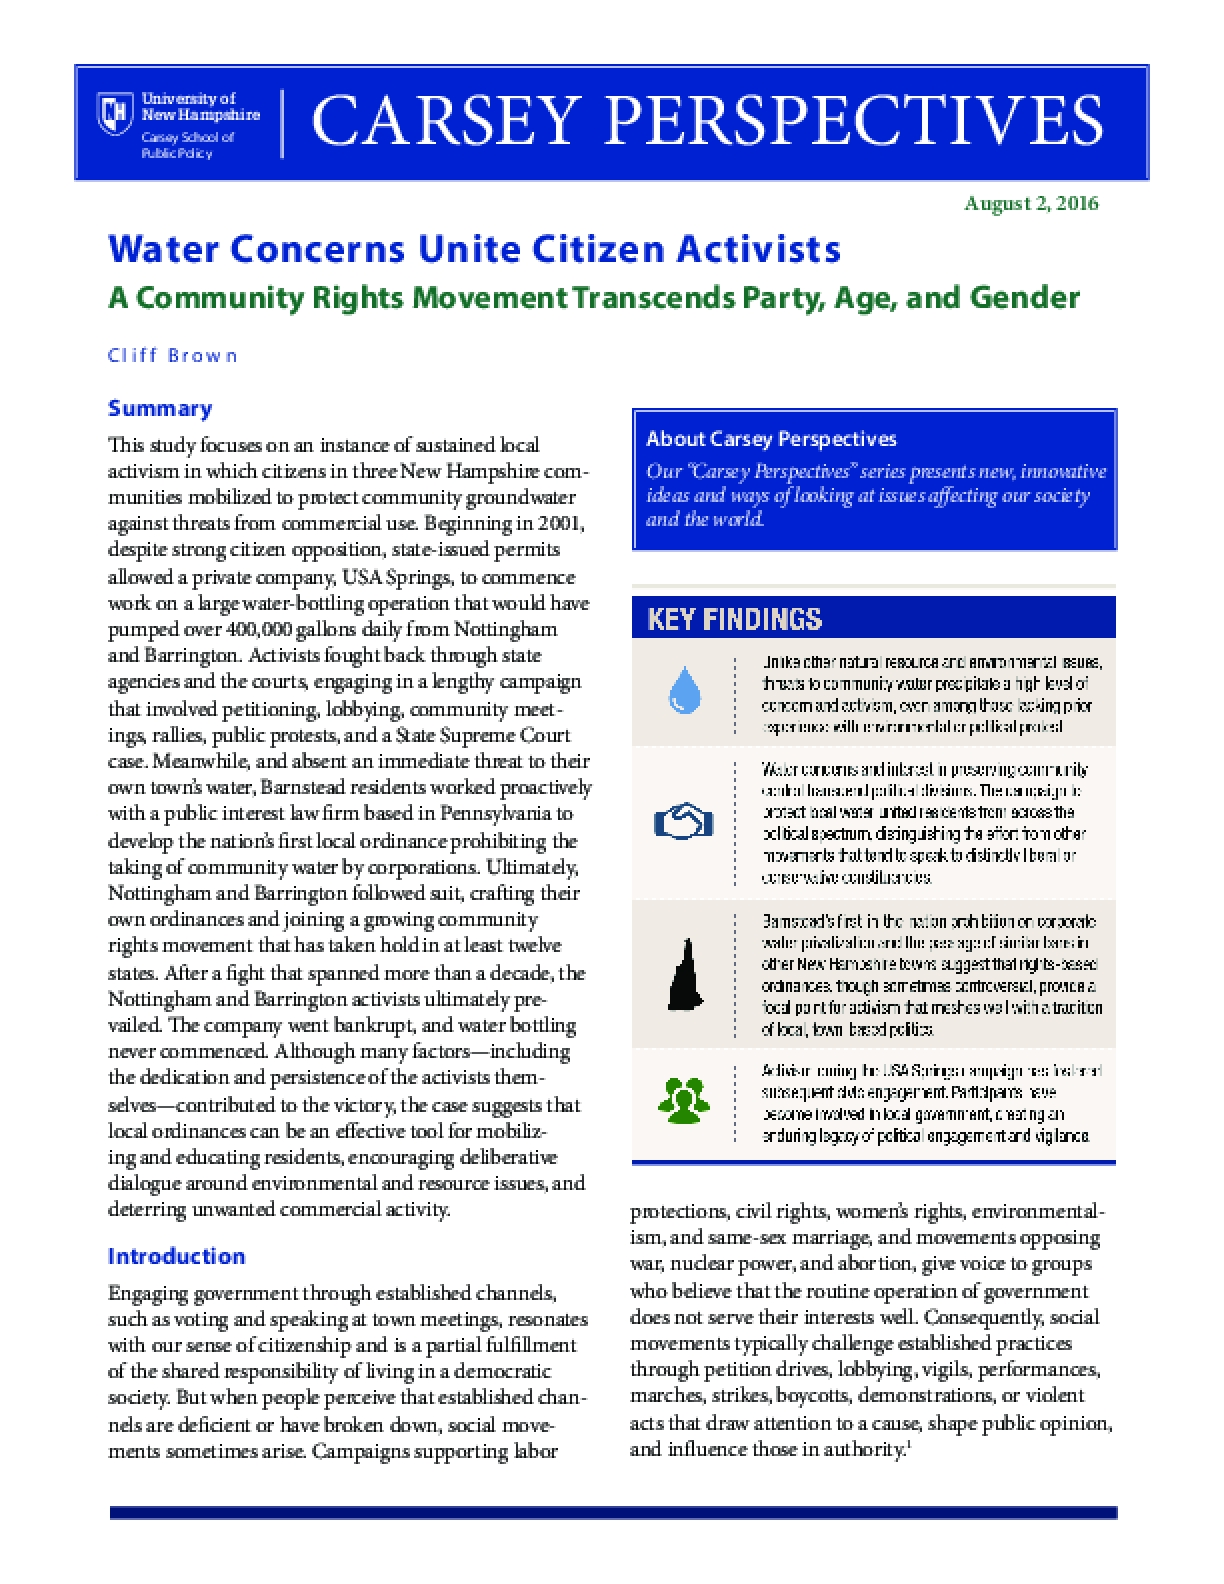 Carsey Perspectives: Water Concerns Unite Citizen Activists